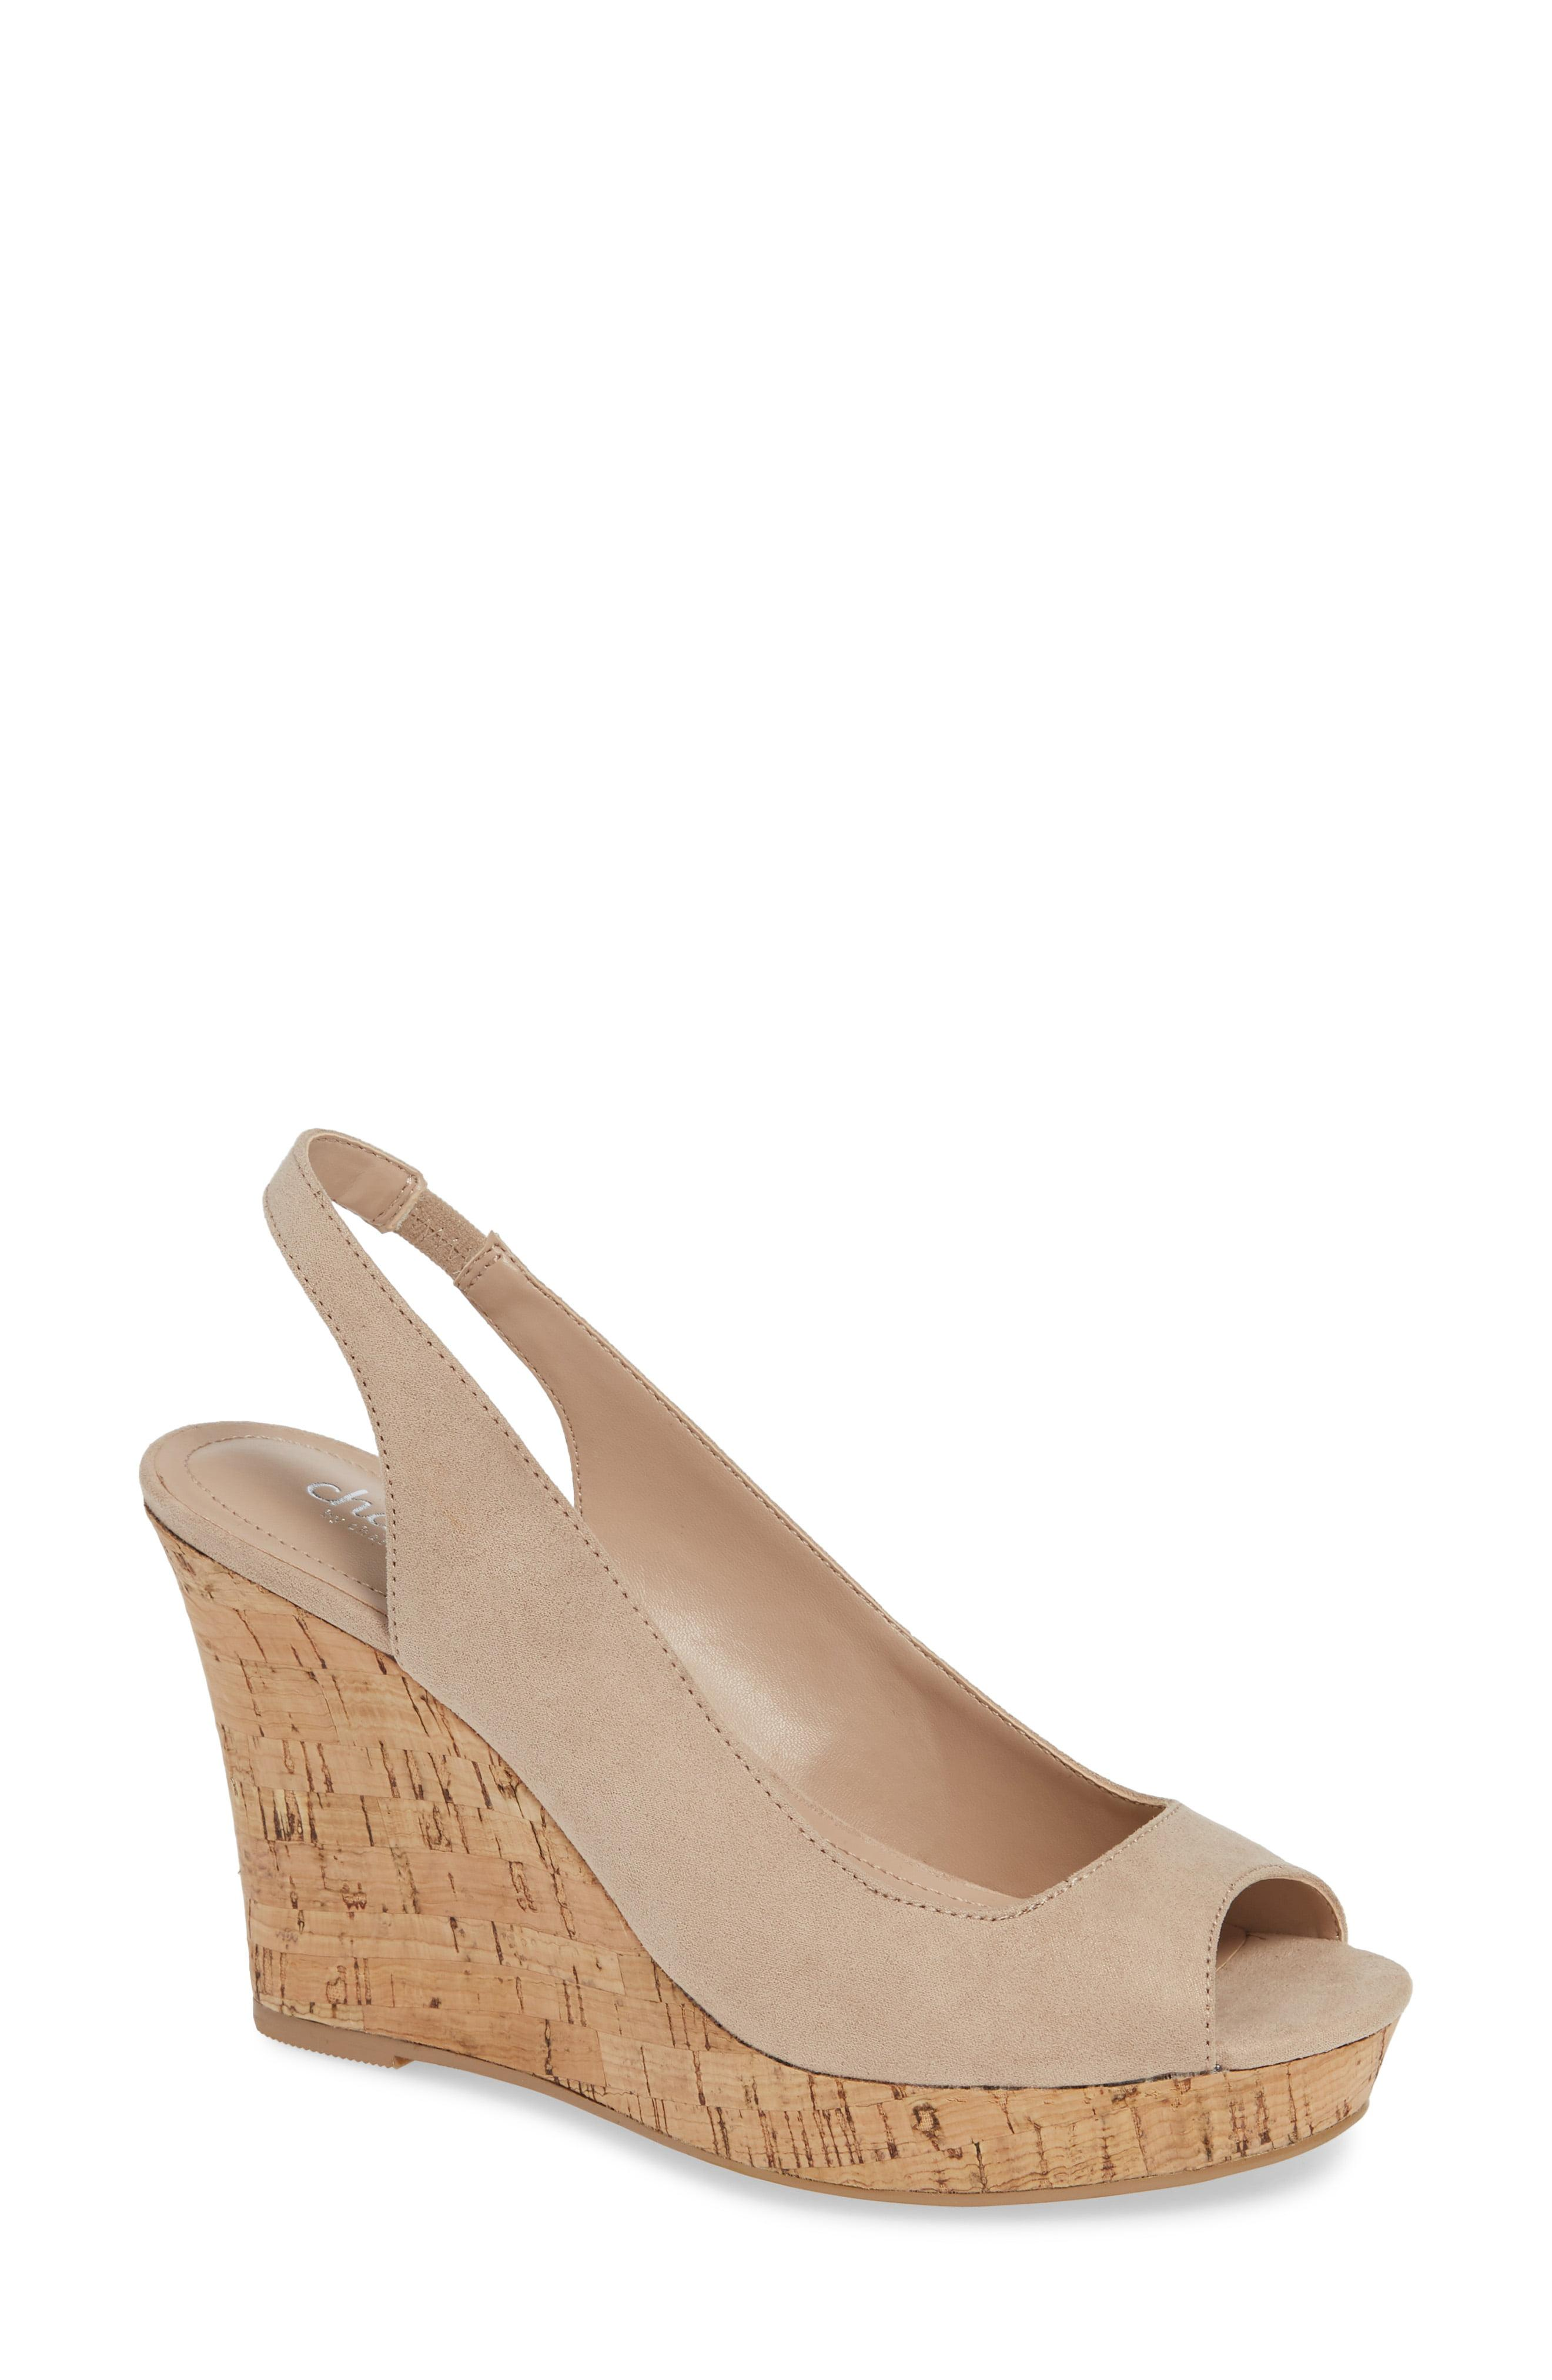 f5a8809627c Charles David. Women s Leandra Slingback Wedge